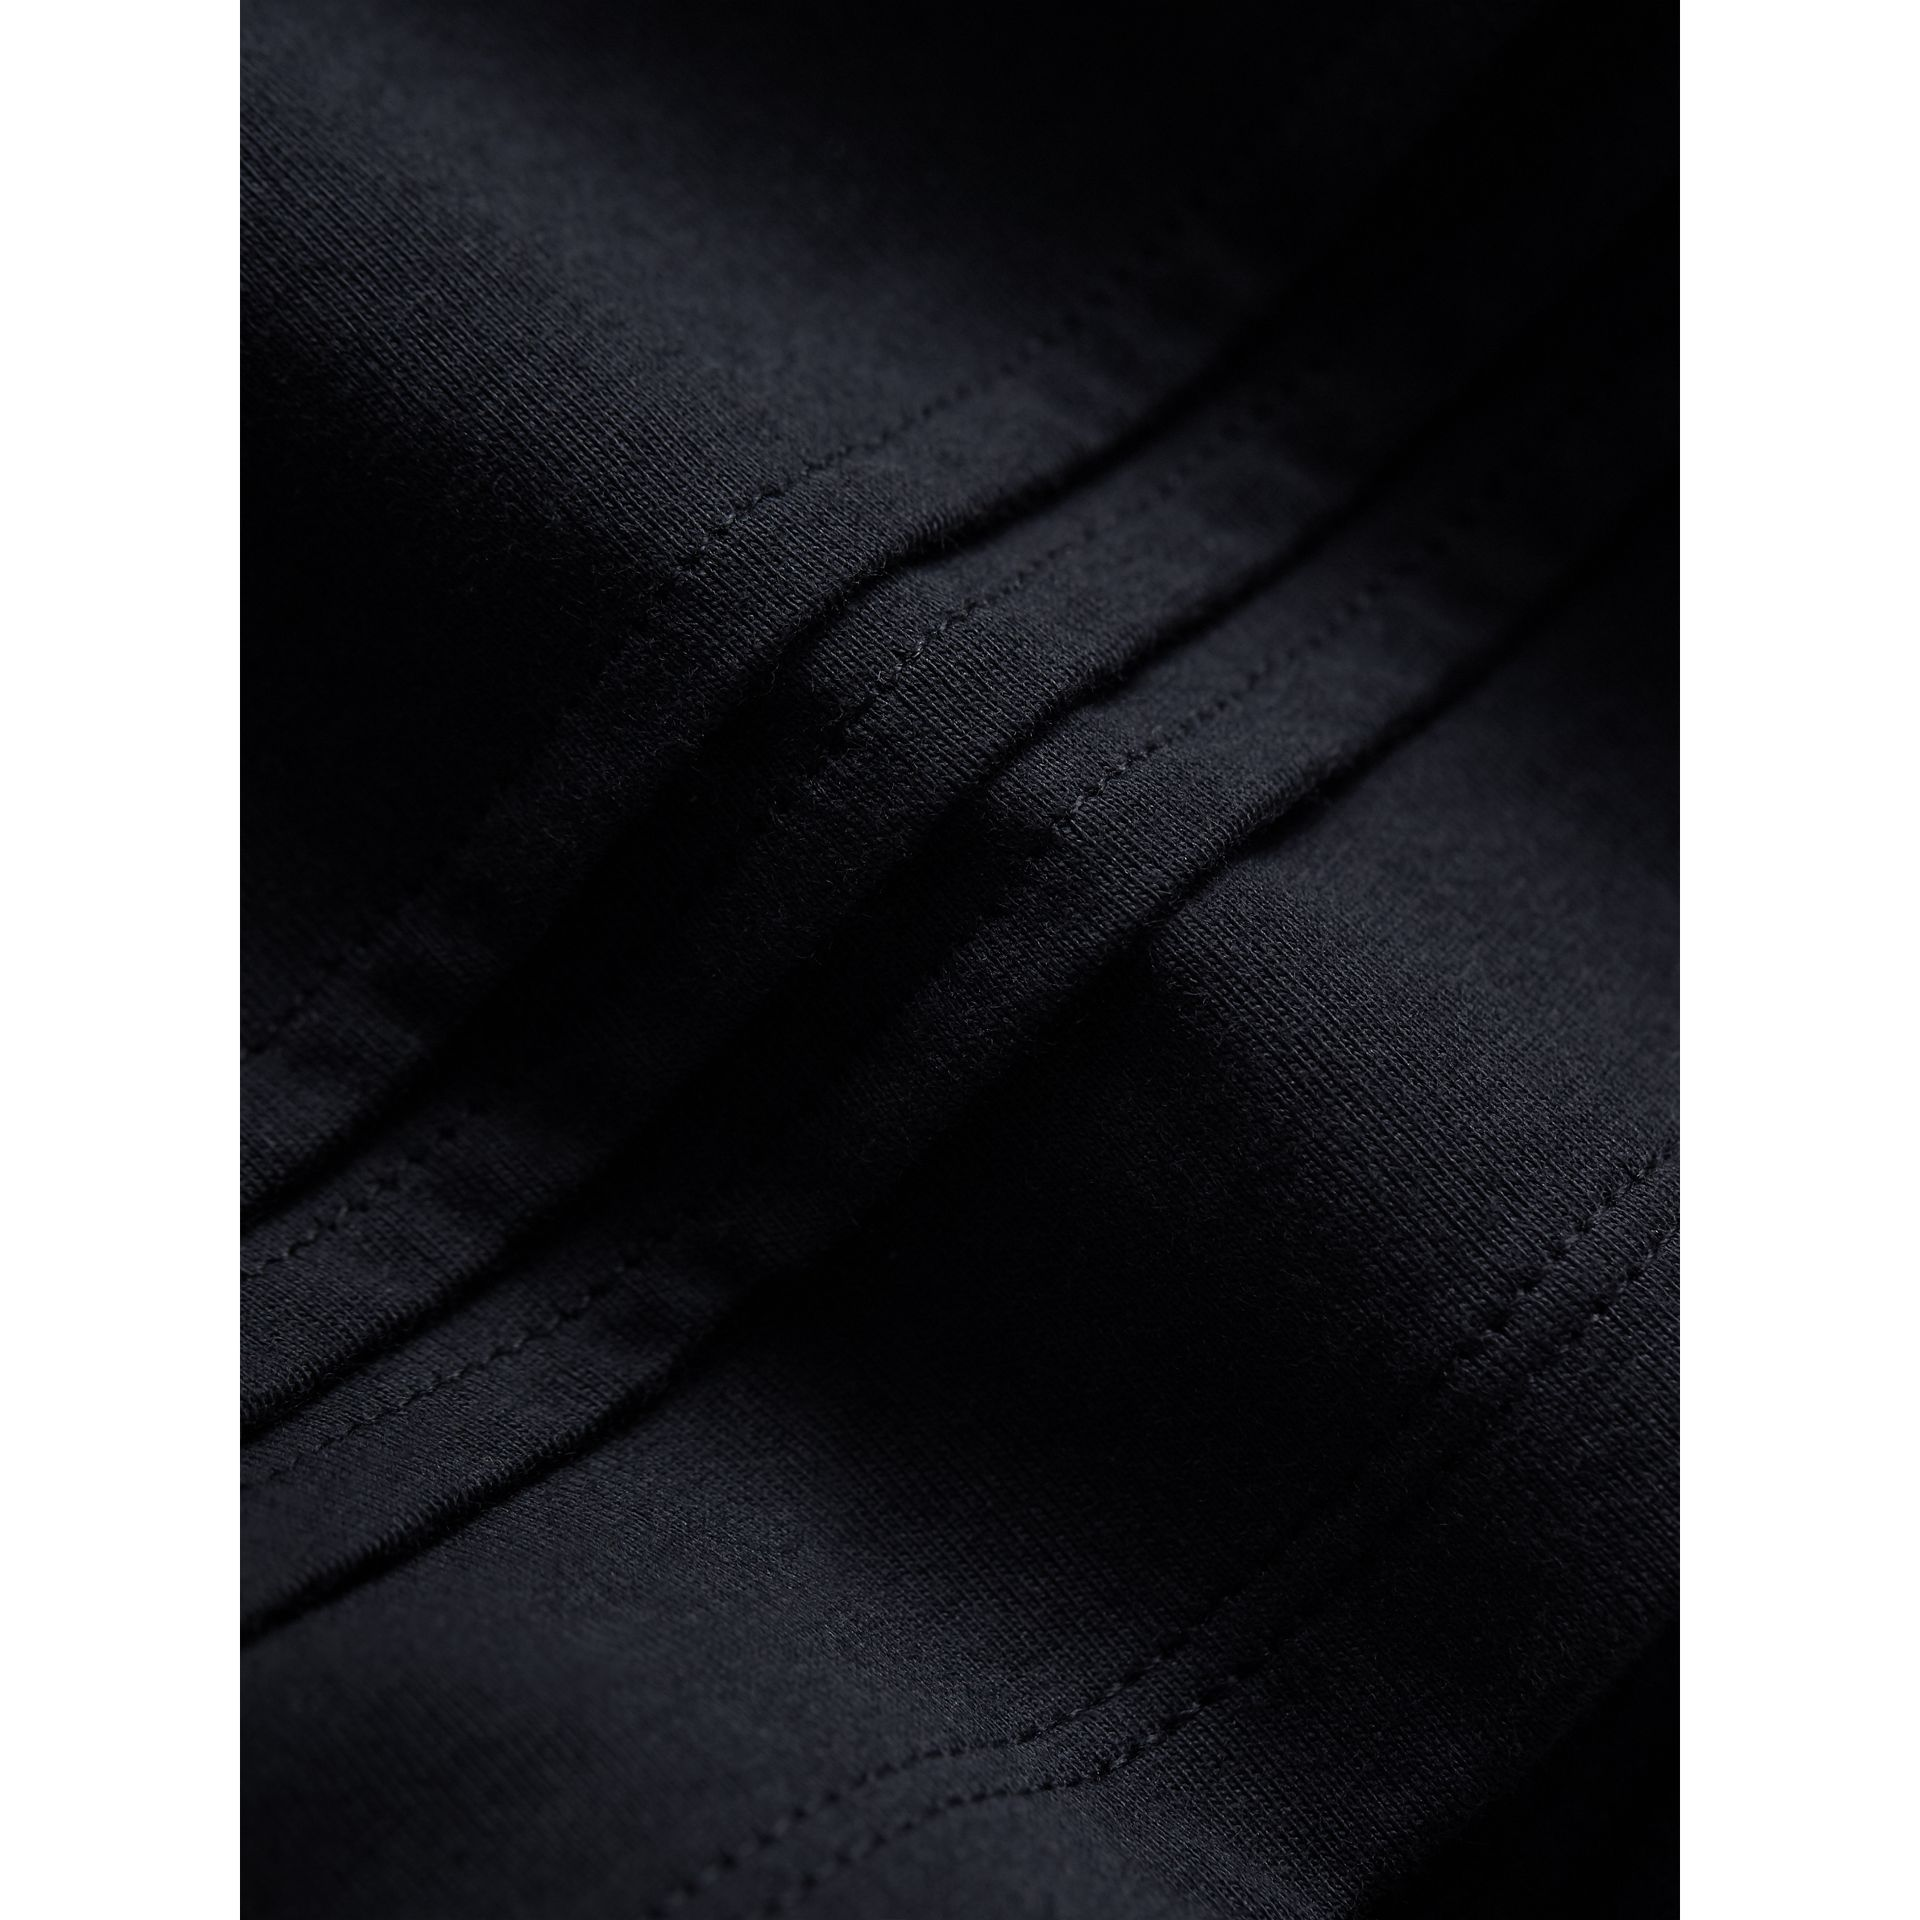 Pleat and Check Detail Cotton Top in Navy | Burberry Singapore - gallery image 2